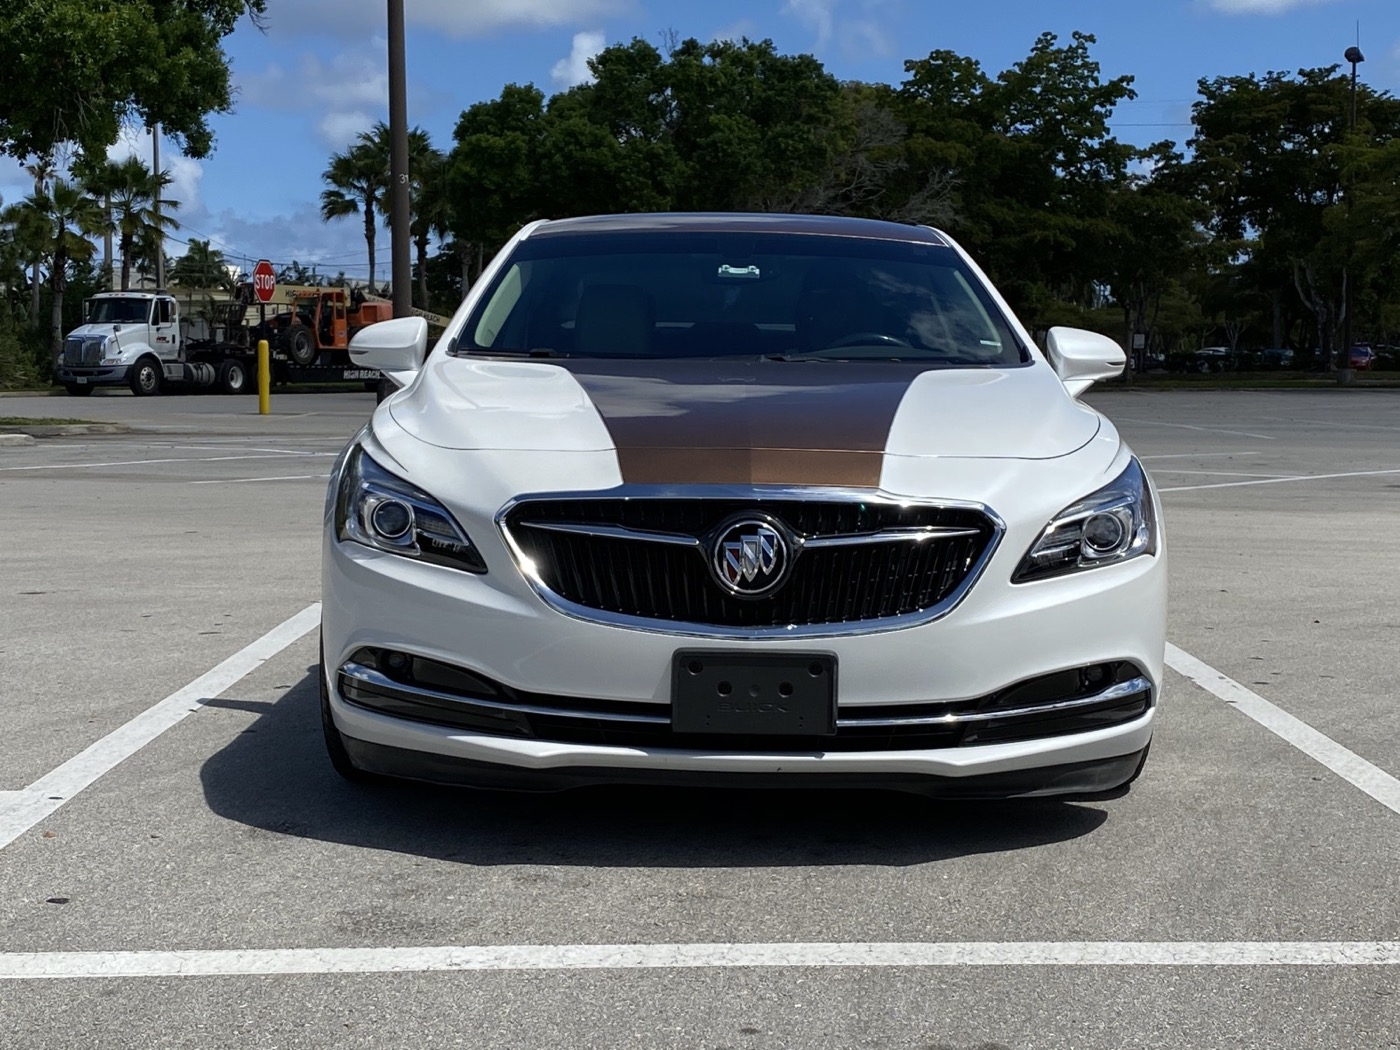 Check Out This Special 2018 Buick Lacrosse   Gm Authority New 2022 Buick Lucerne Rims, Tire Size, Headlights